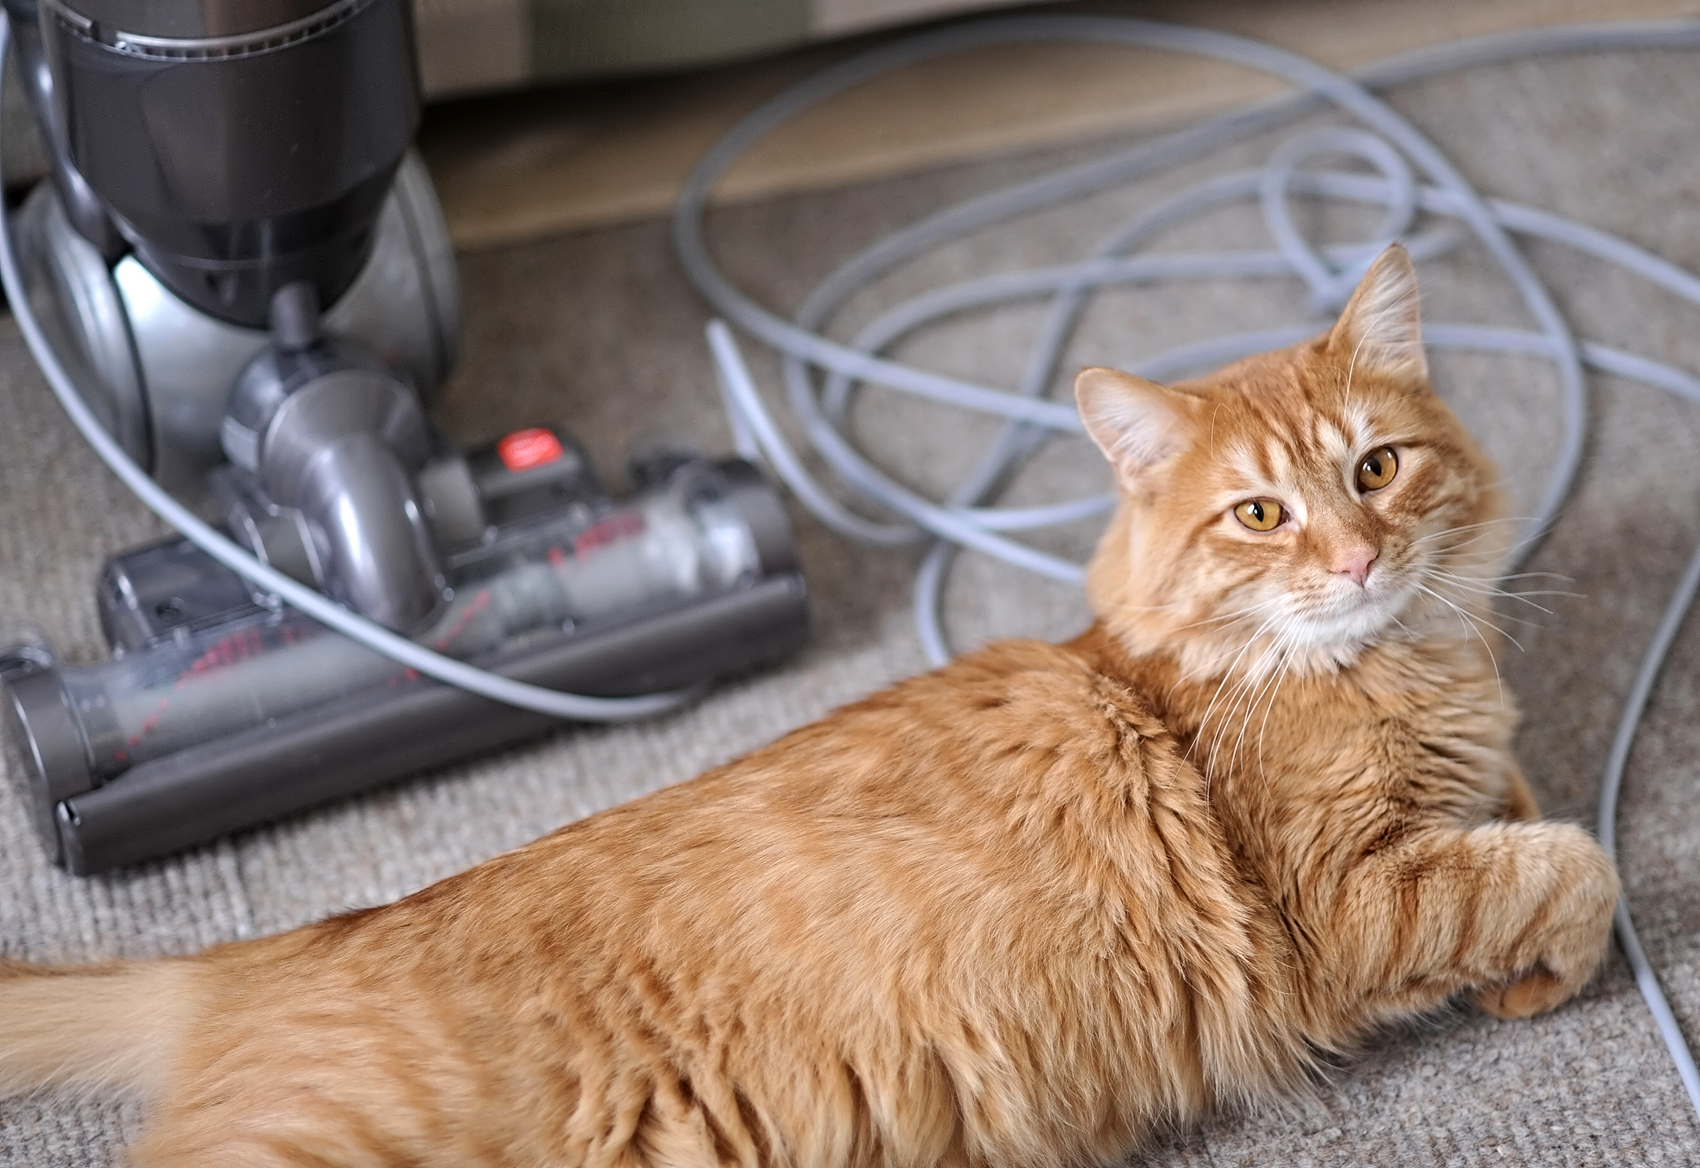 If your carpet is covered in cat hair, you need to know this squeegee trick for removing pet hair.